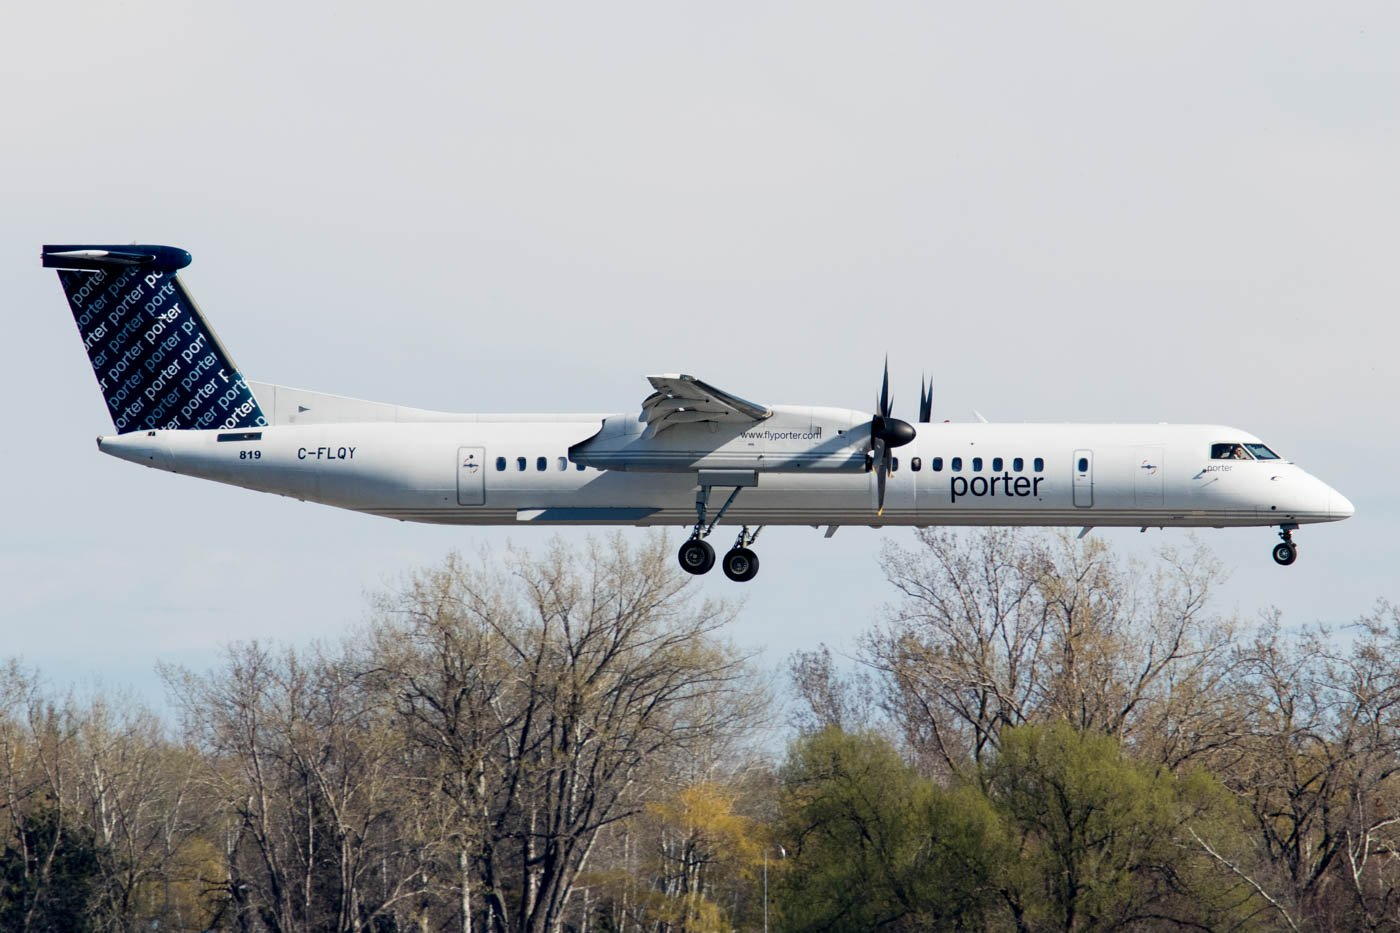 Porter Airlines Dash 8 at Toronto City Airport